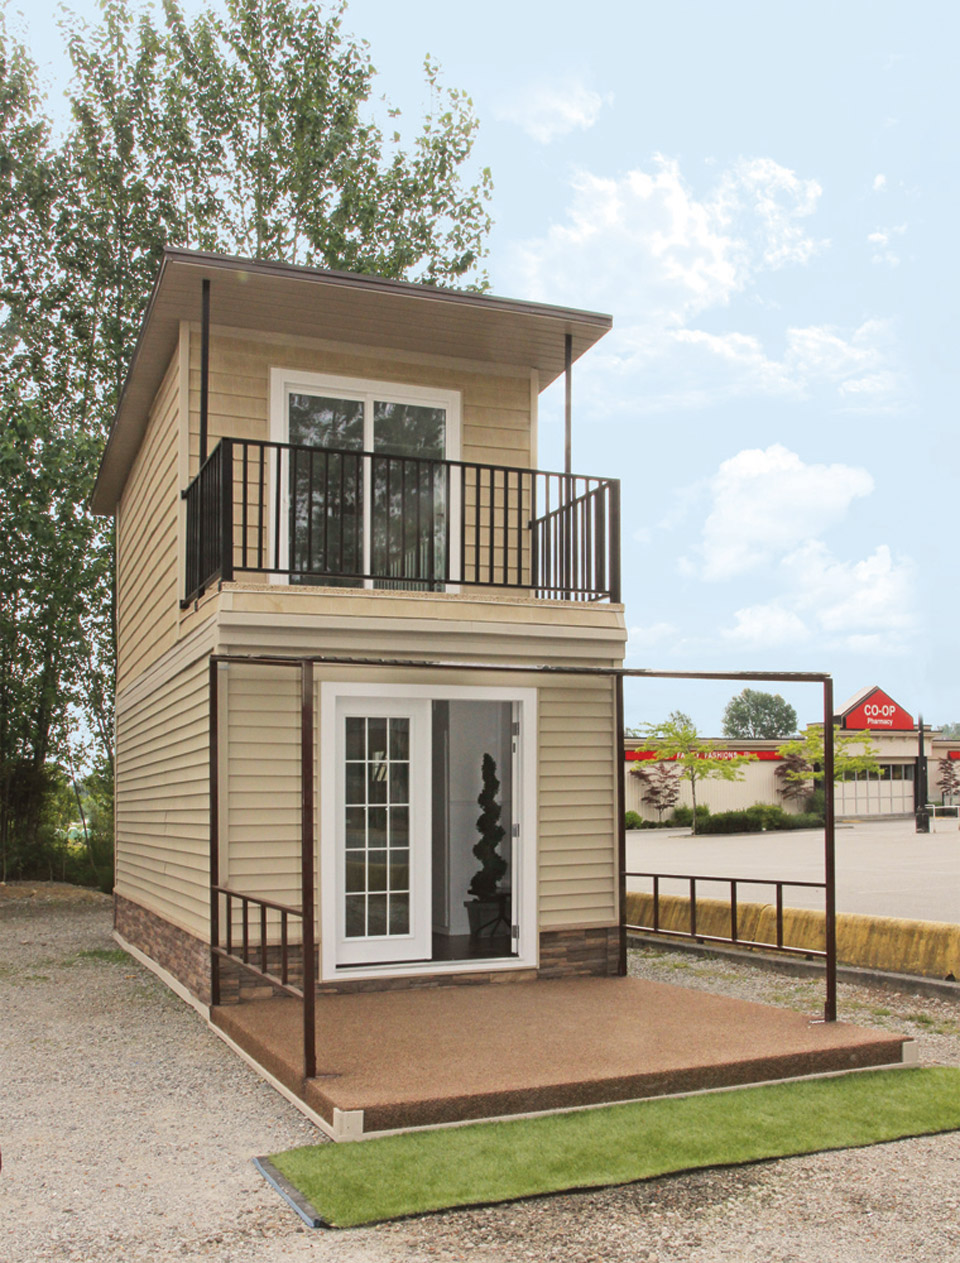 The eagle 1 a 350 sq ft 2 story steel framed micro home for Little house